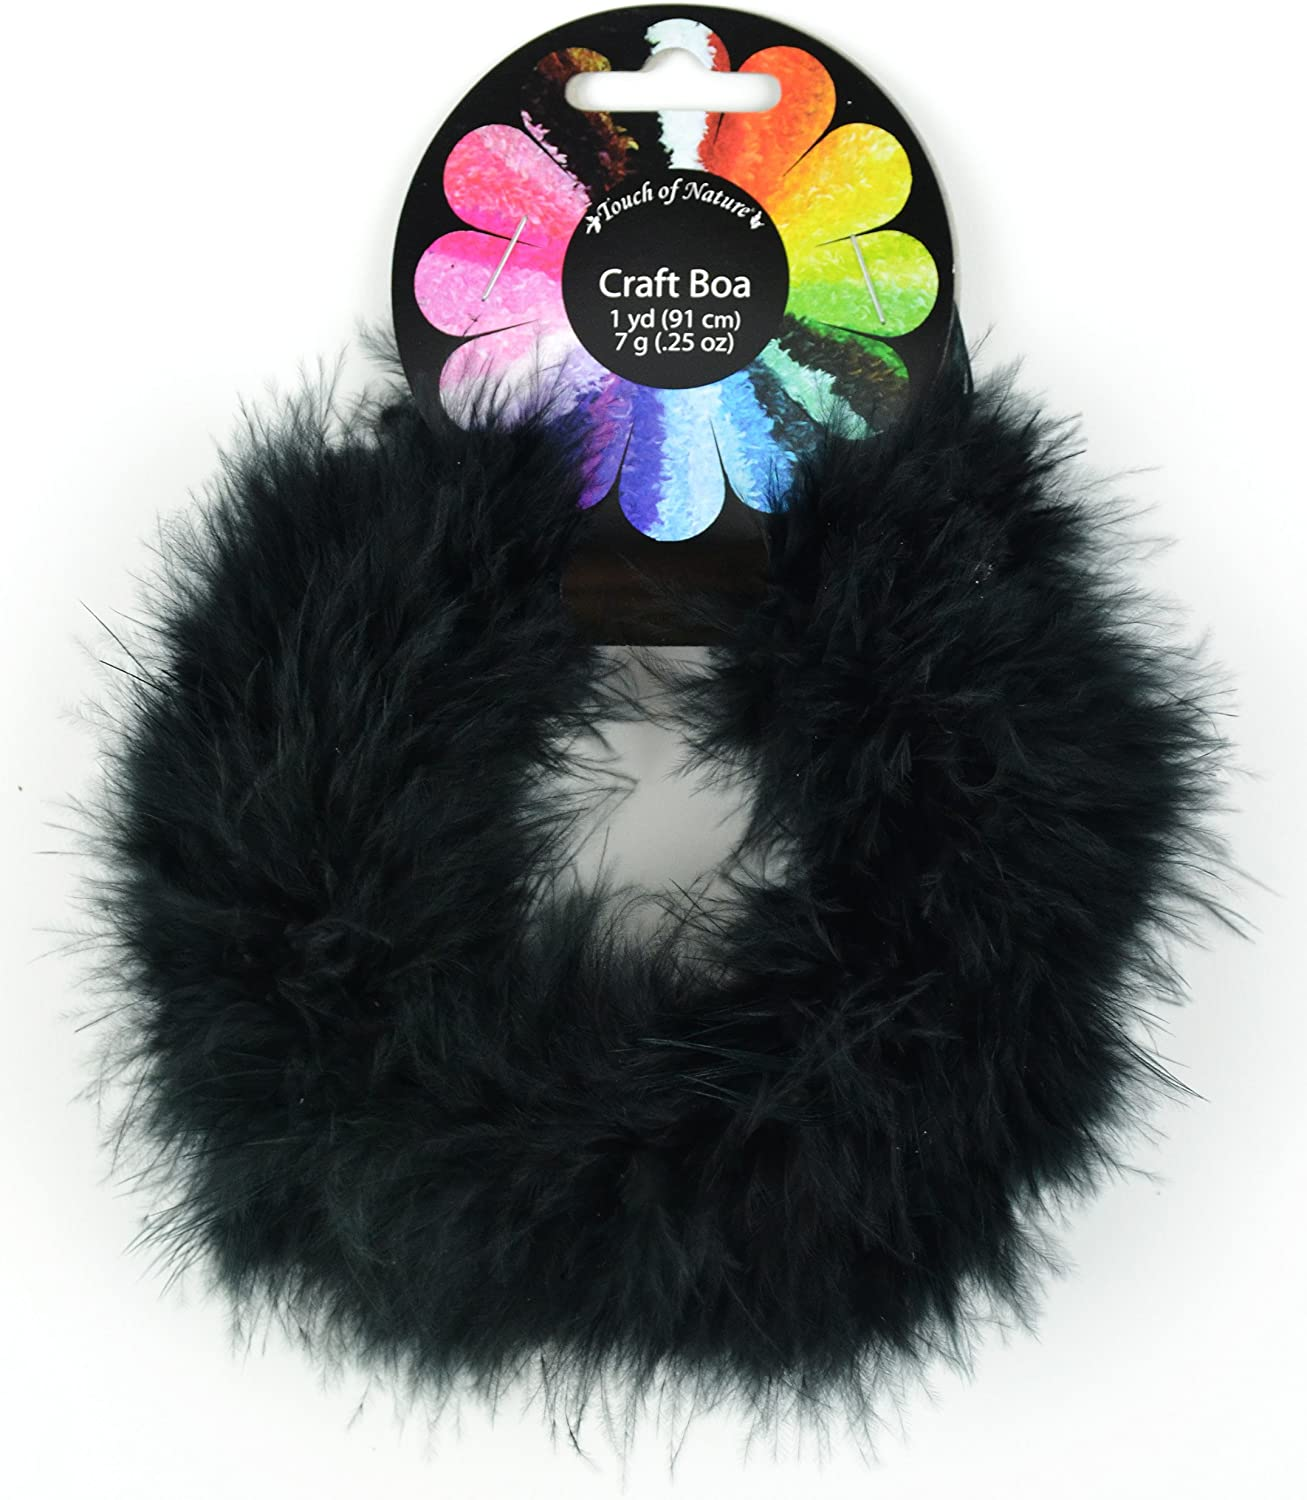 Touch of Nature 1-Piece Feather Marabou Arts for and C Boa Craft OFFicial Dealing full price reduction site